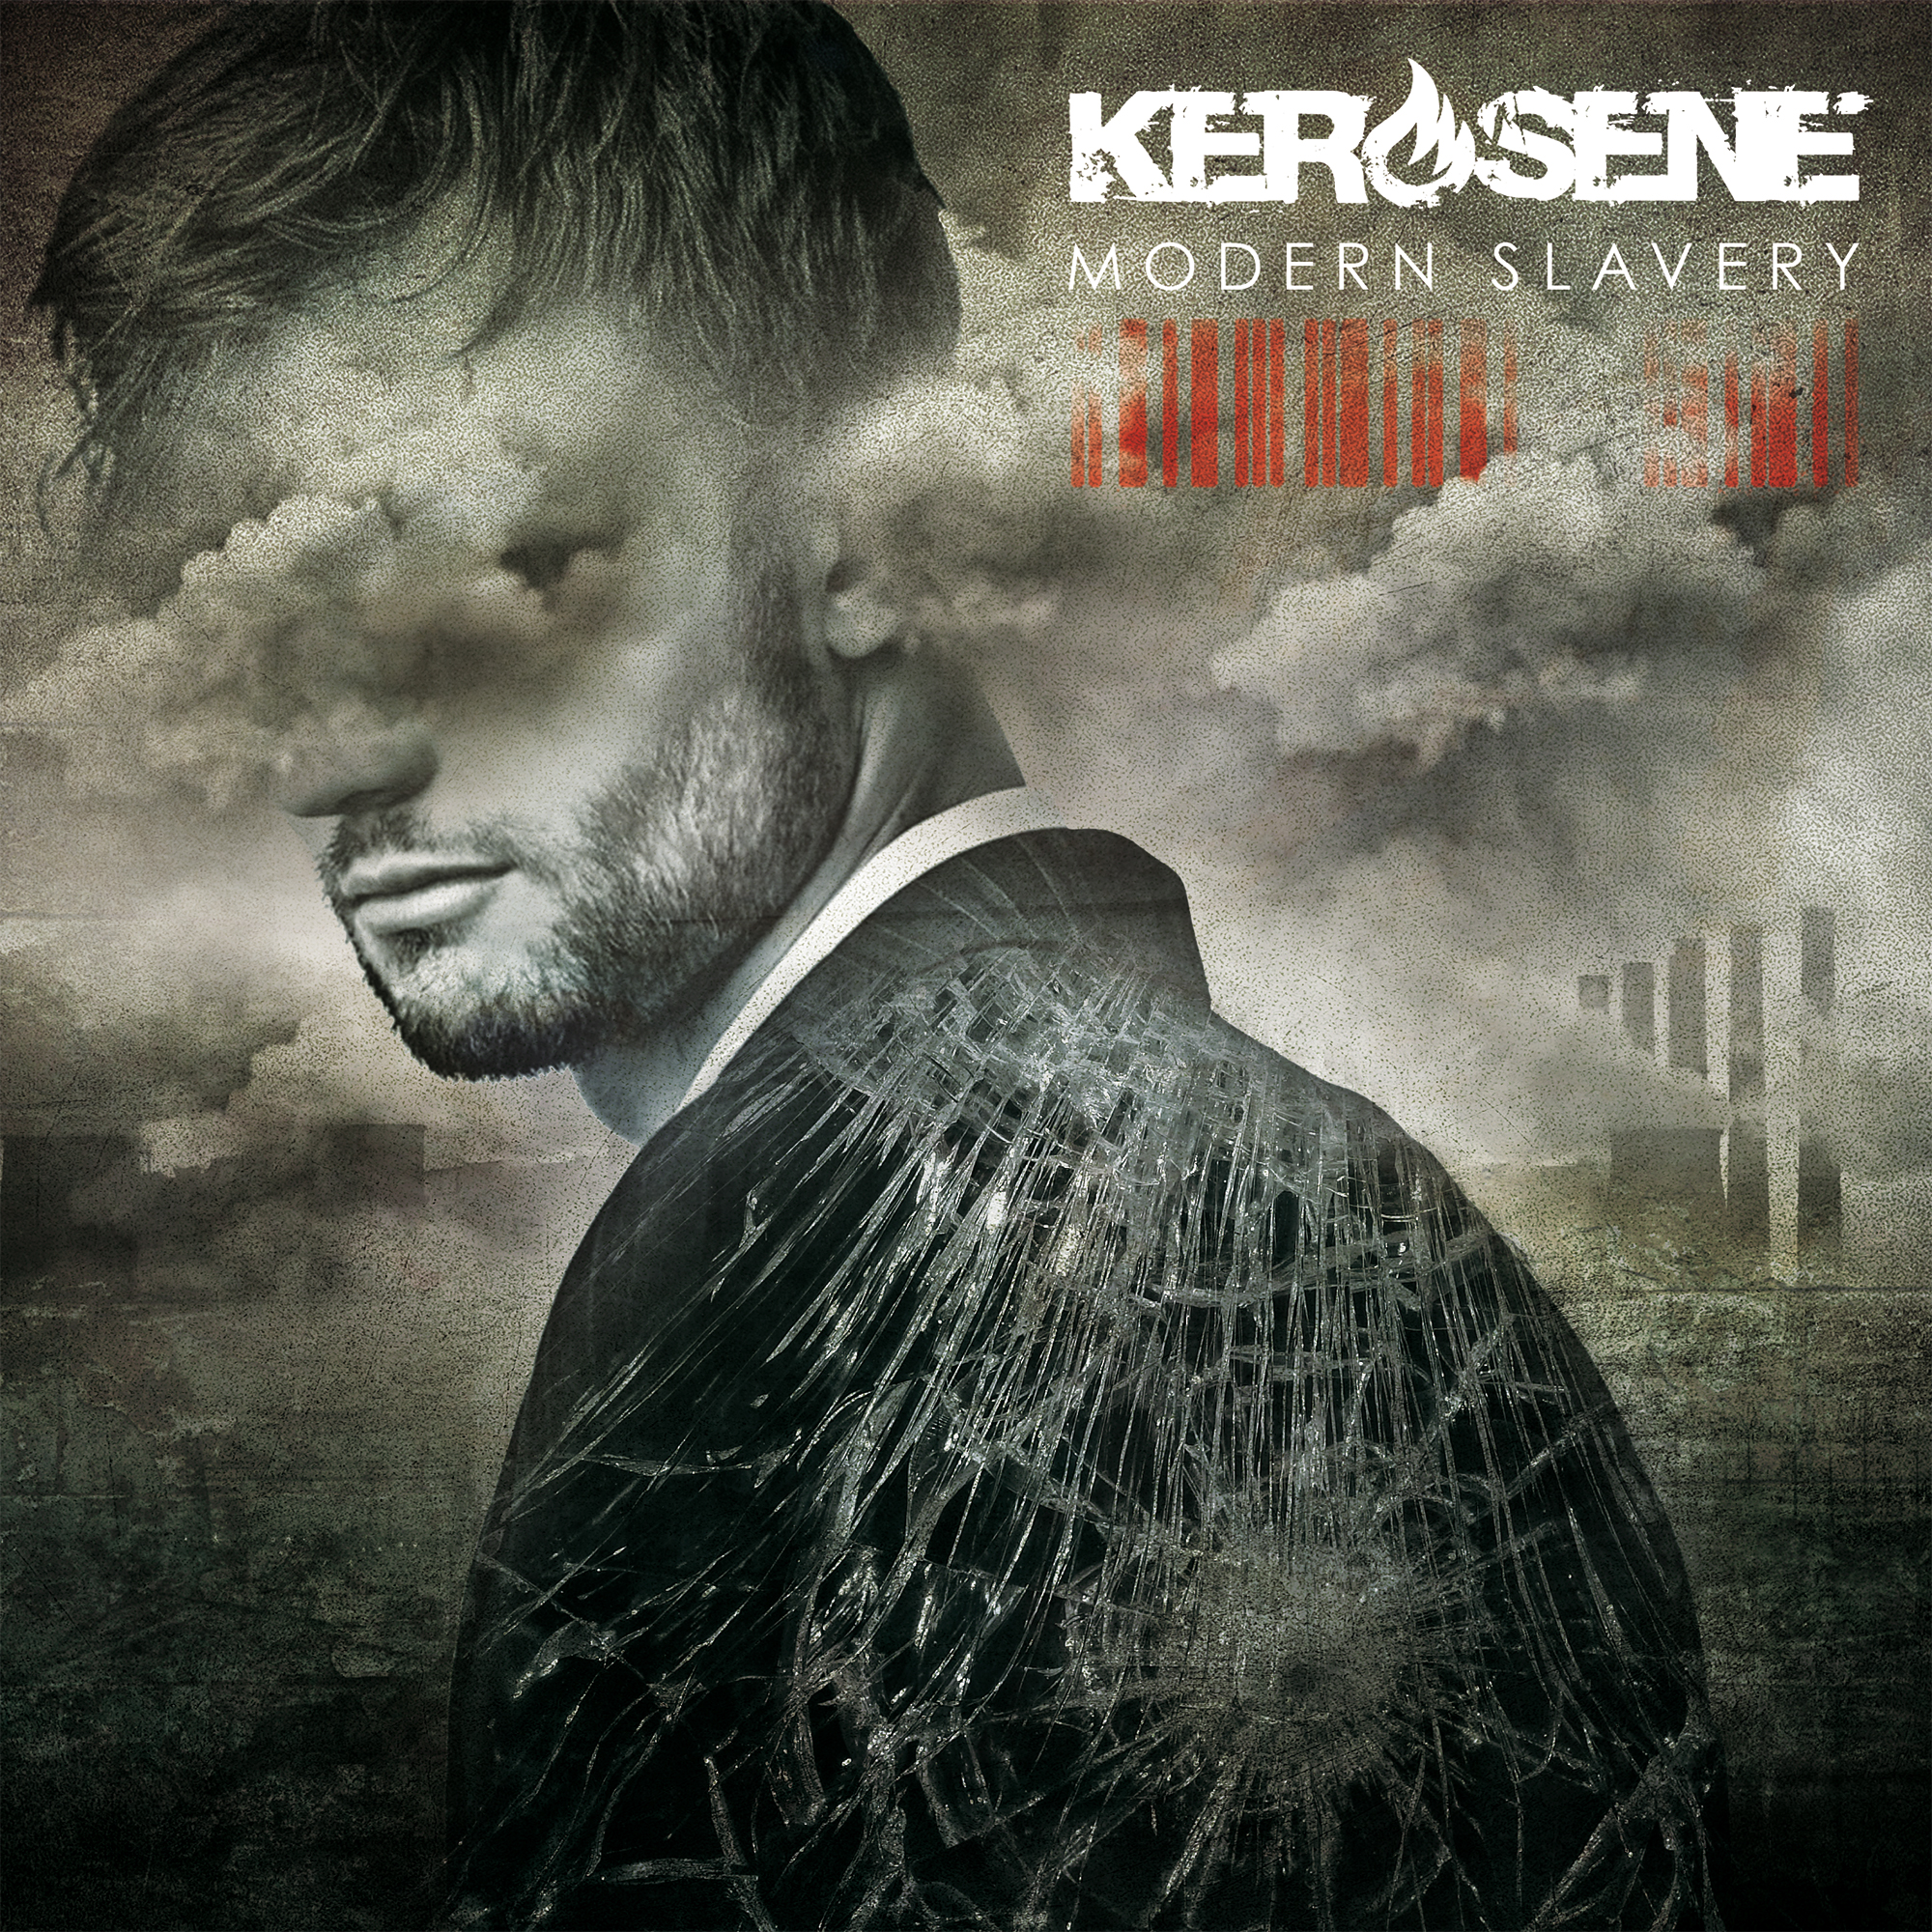 Metal band Kerosene EP release artwork for Modern Slavery Holier Than Thou Records